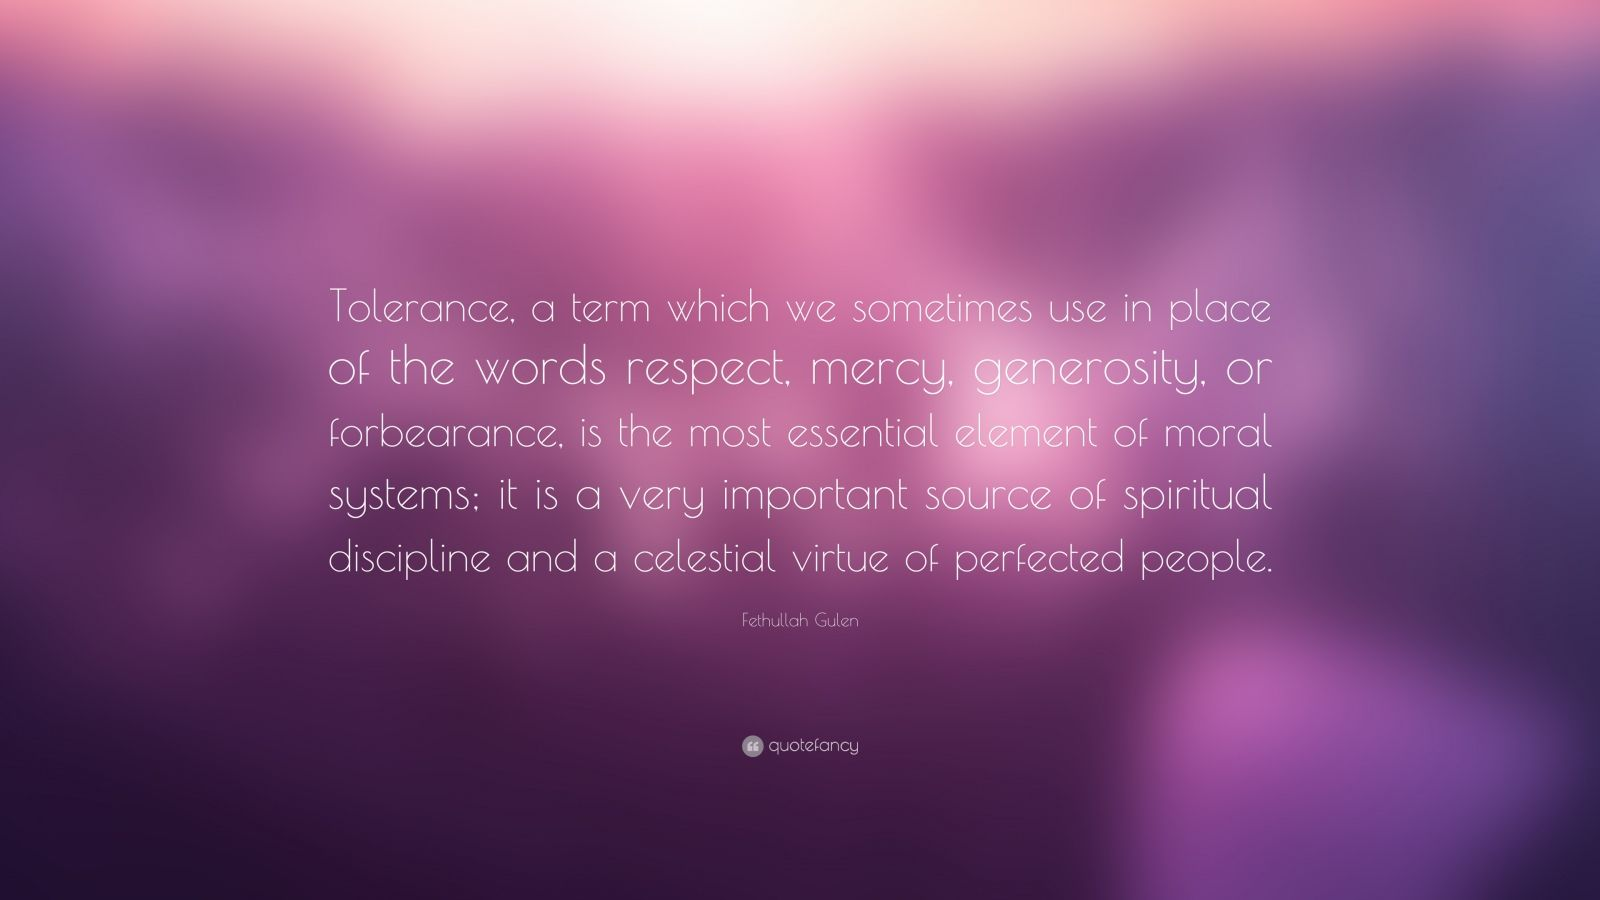 """Fethullah Gulen Quote: """"Tolerance, a term which we sometimes use in place of the words respect, mercy, generosity, or forbearance, is the most essential element of moral systems; it is a very important source of spiritual discipline and a celestial virtue of perfected people."""""""